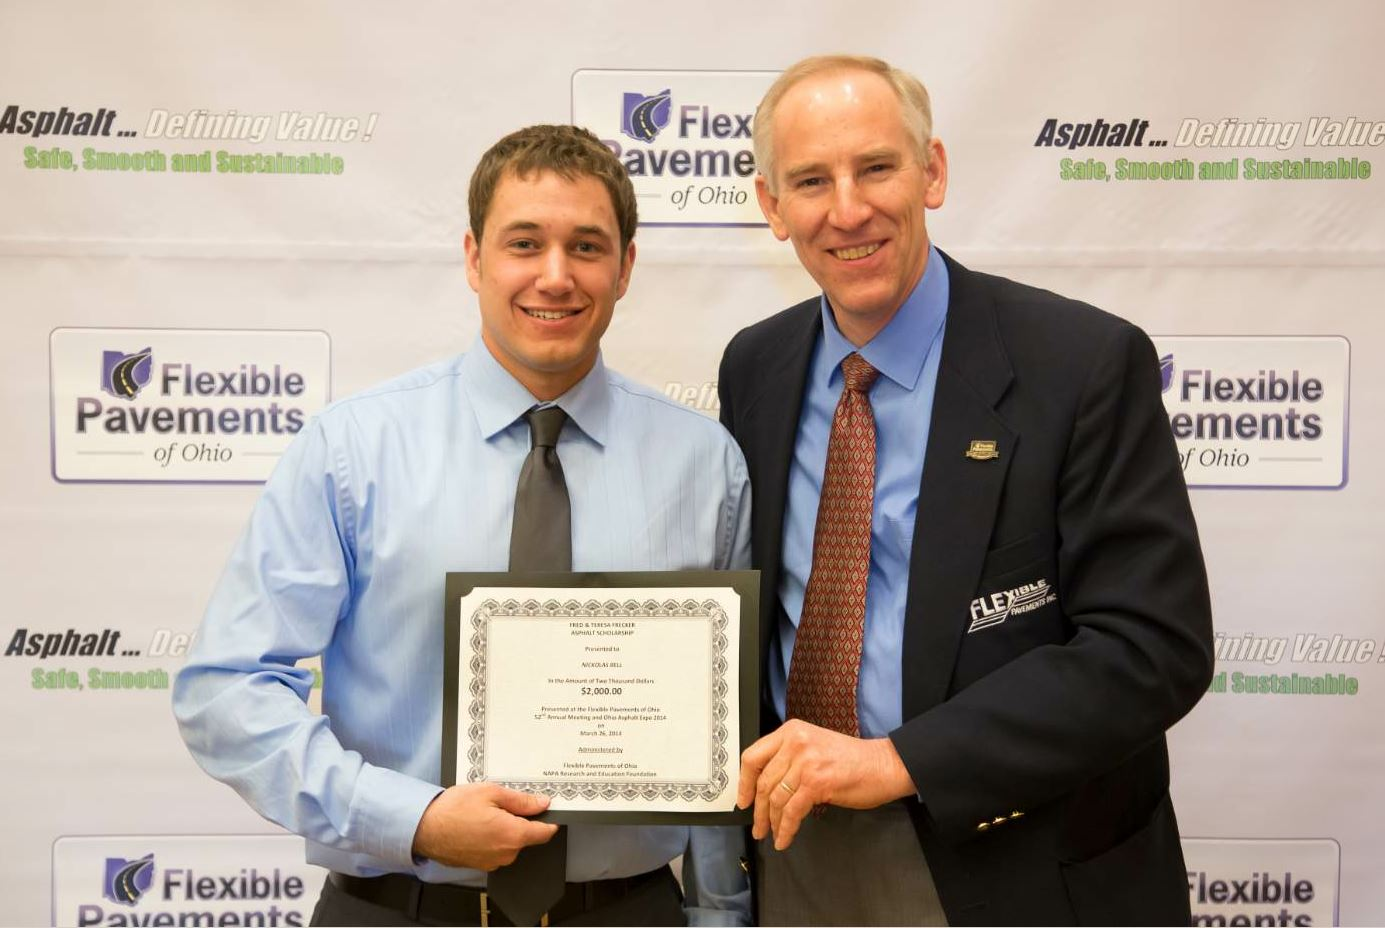 FPO's asphalt scholarship program began in 1996. To date, the program has awarded 448 scholarships for a total value of $598,000. Here, Ursich (right) awards a recent scholarship recipient.